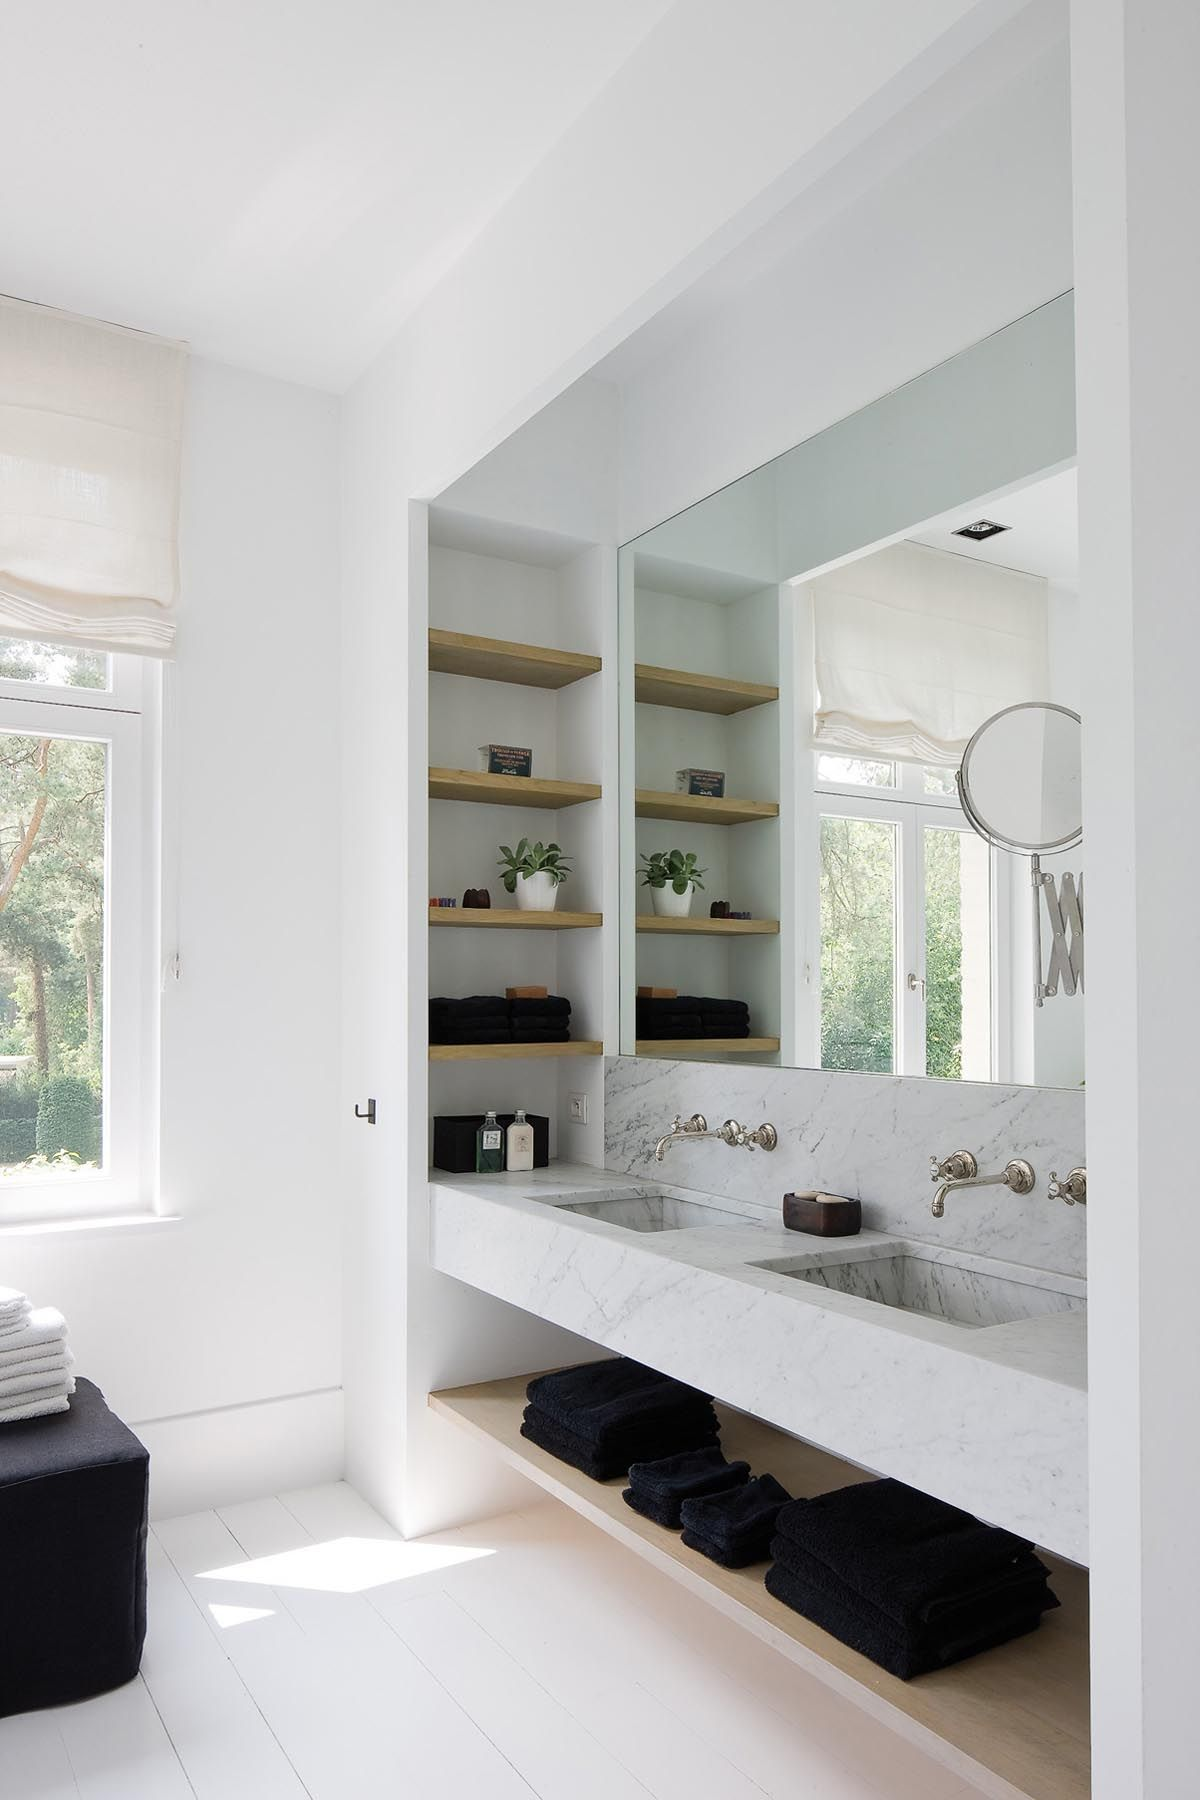 Nifty Bathroom Storage Ideas to Make Use of Every Bit of Space ...